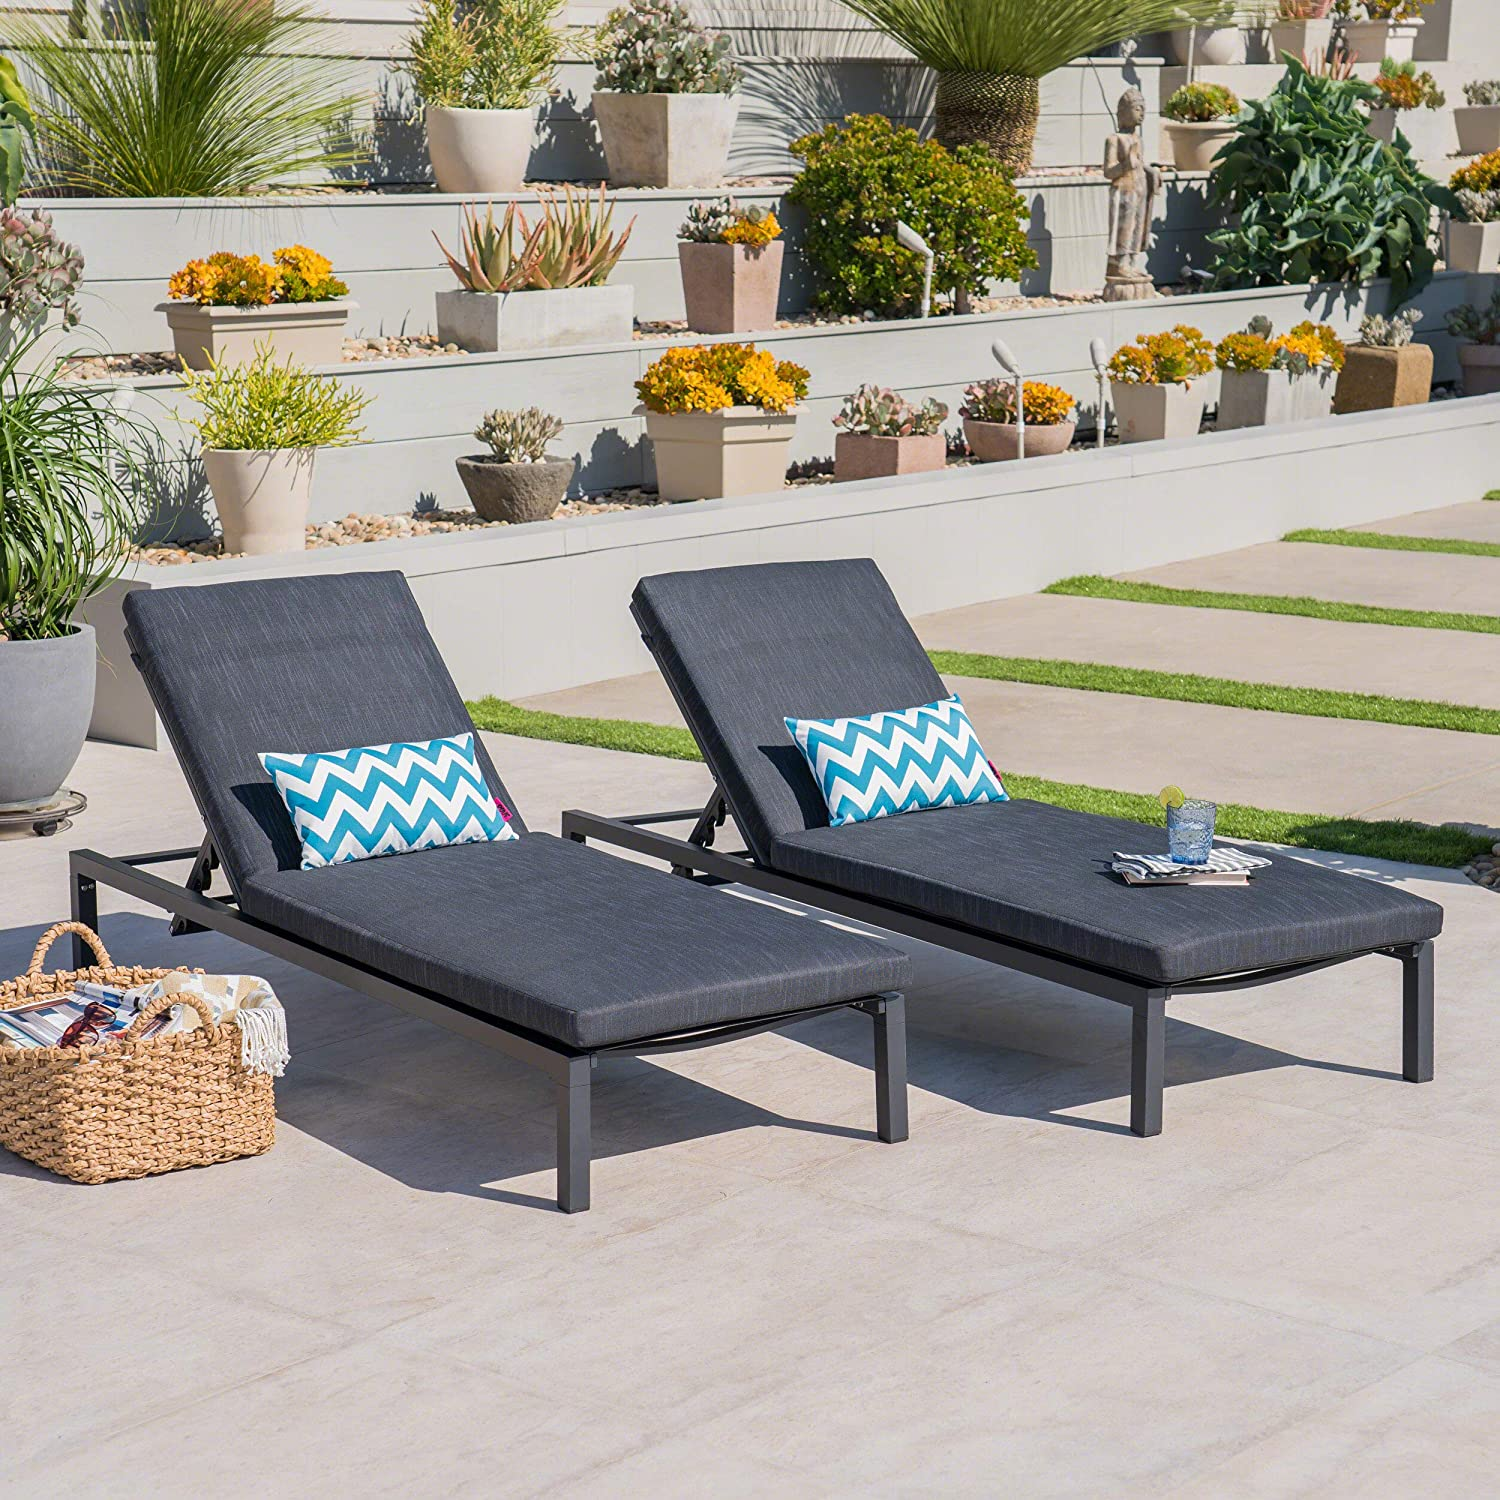 Great Deal Furniture Nealie Outdoor Mesh Black Aluminum Frame Chaise Lounge w Water Resistant Cushion Set of 2